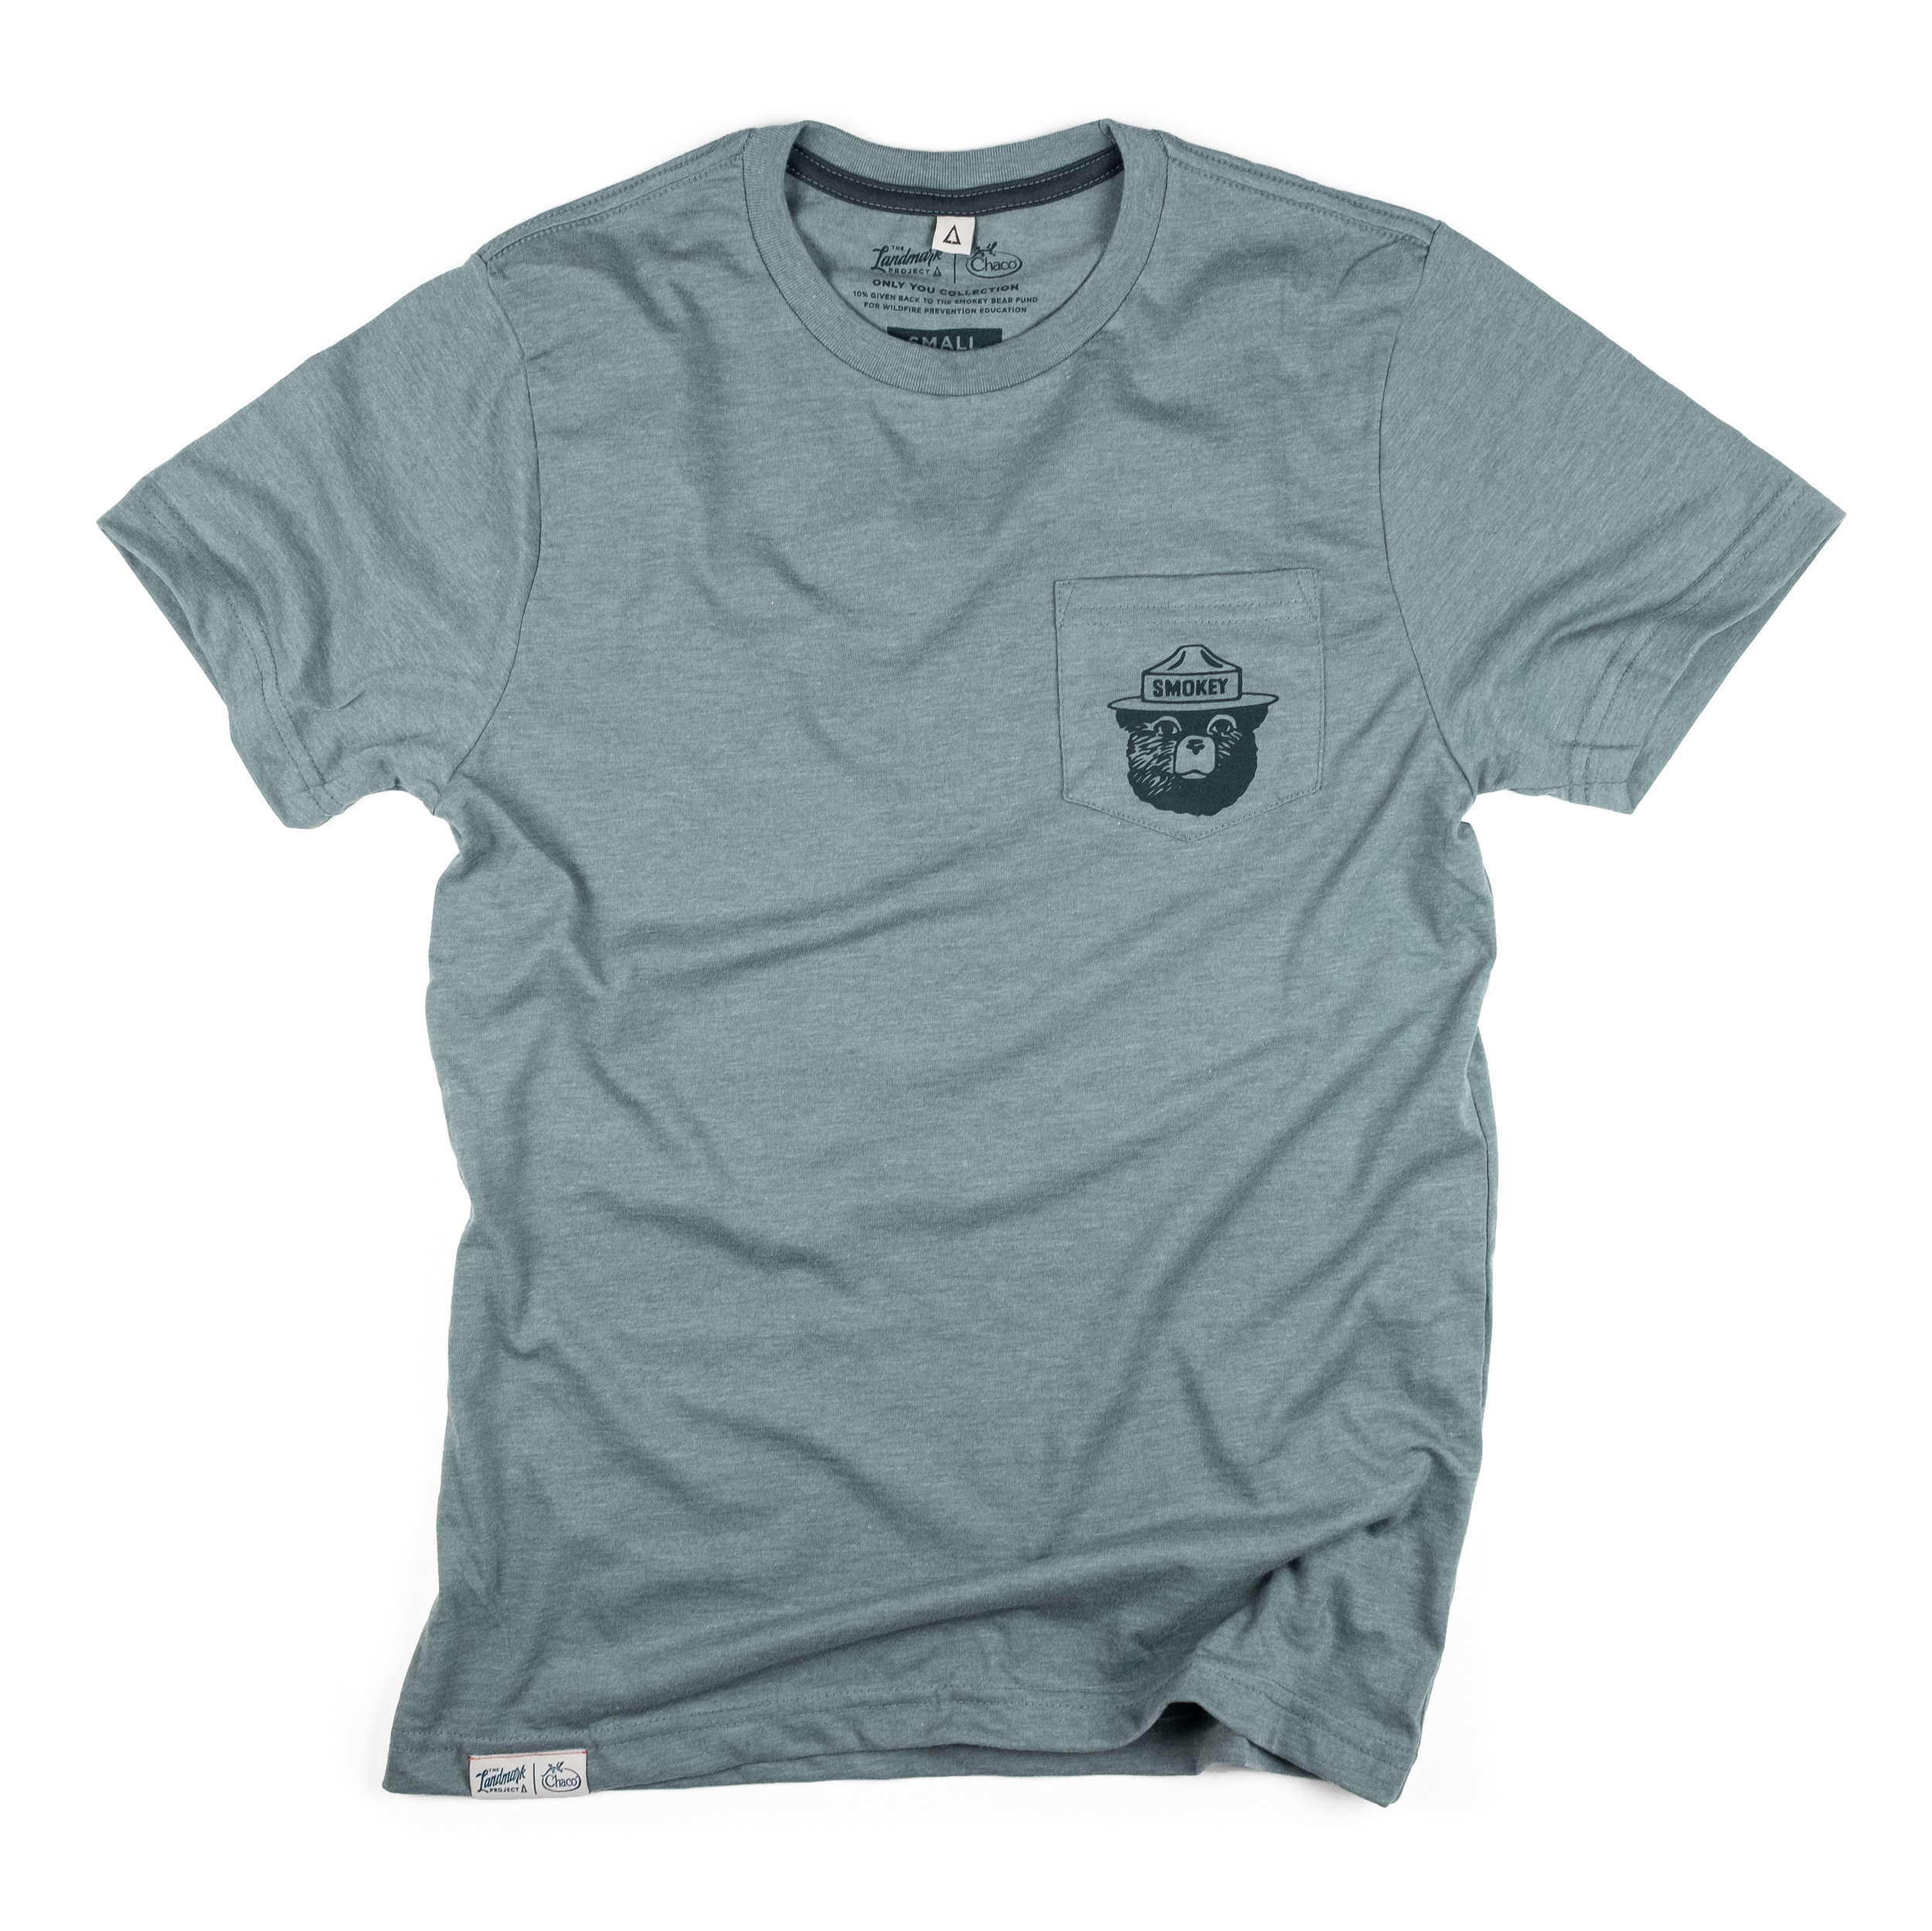 1521470001-only-you-pocket-tee-1.jpg